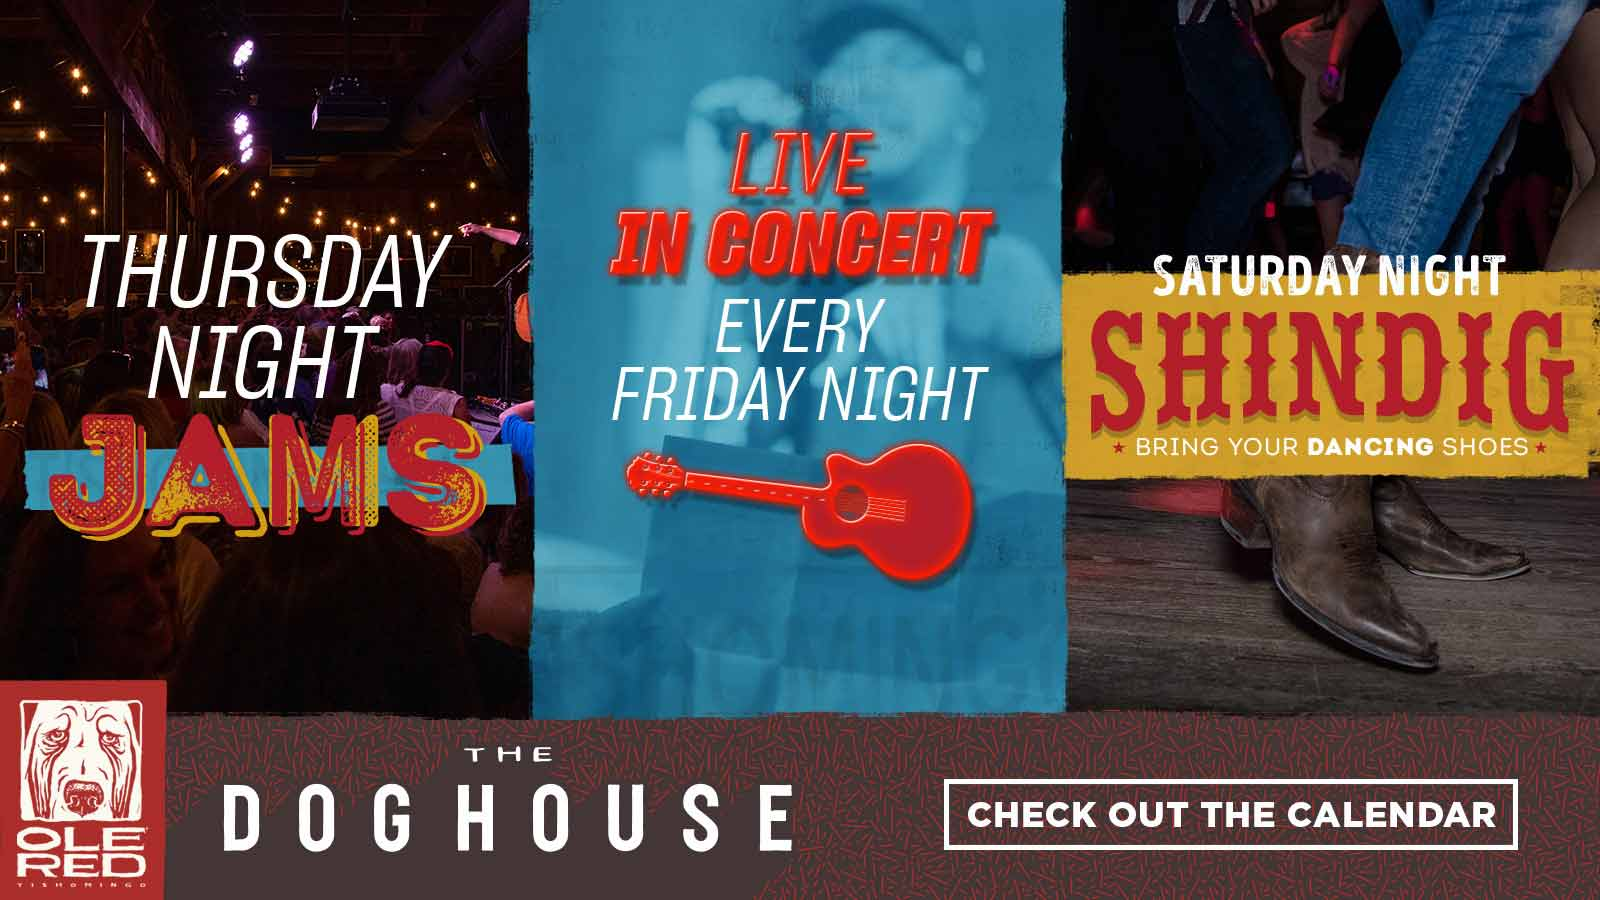 The Doghouse - Thursday Night Jams - Live In Concert Every Friday Night - Saturday Night Shindig